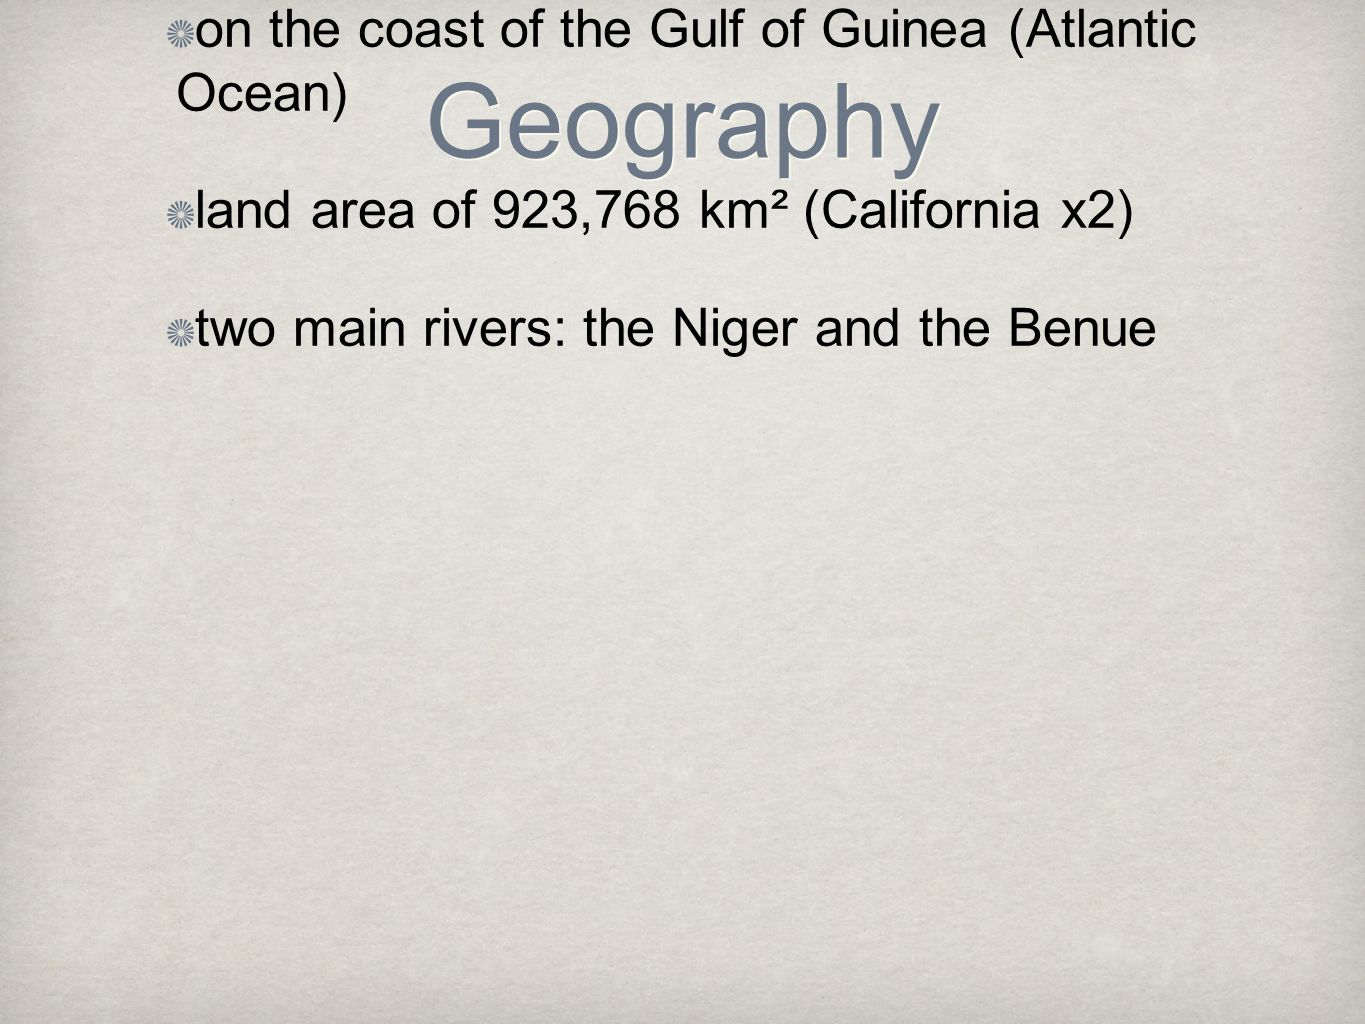 Geography on the coast of the Gulf of Guinea (Atlantic Ocean) land area of 923,768 km² (California x2) two main rivers: the Niger and the Benue